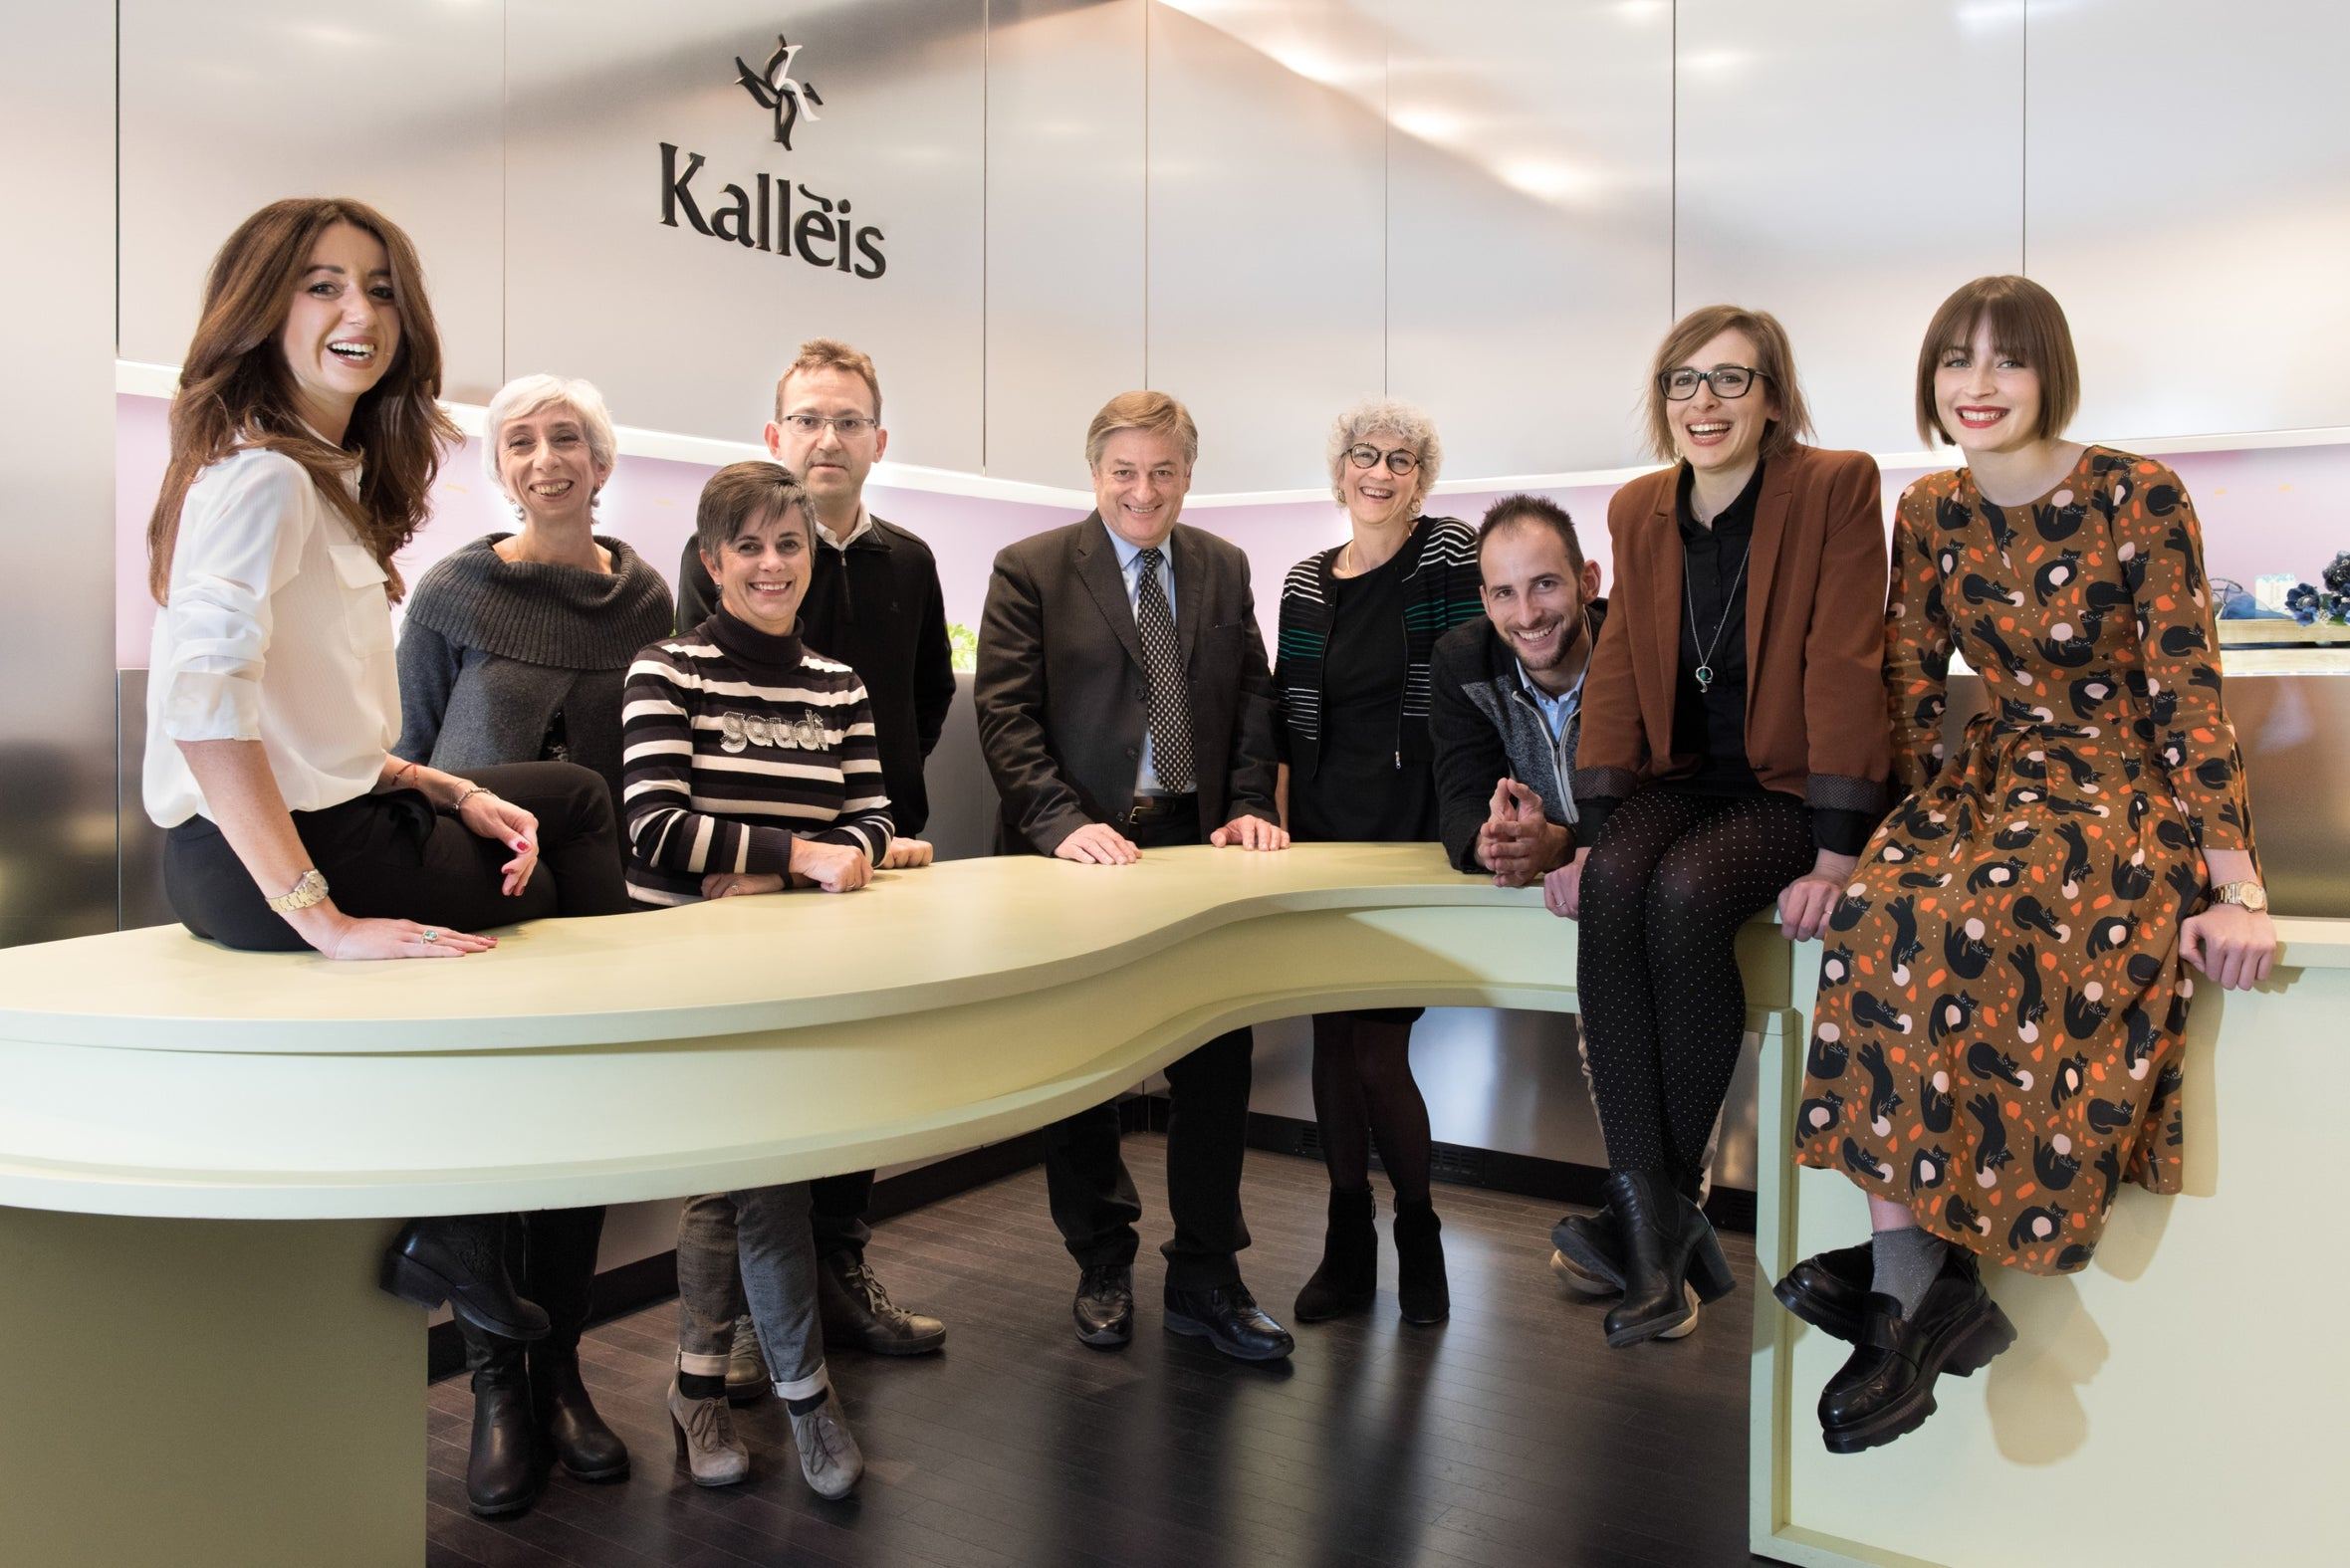 Kalleis has built a trusted reputation amongst dermatologists and other skin health professionals around the world.